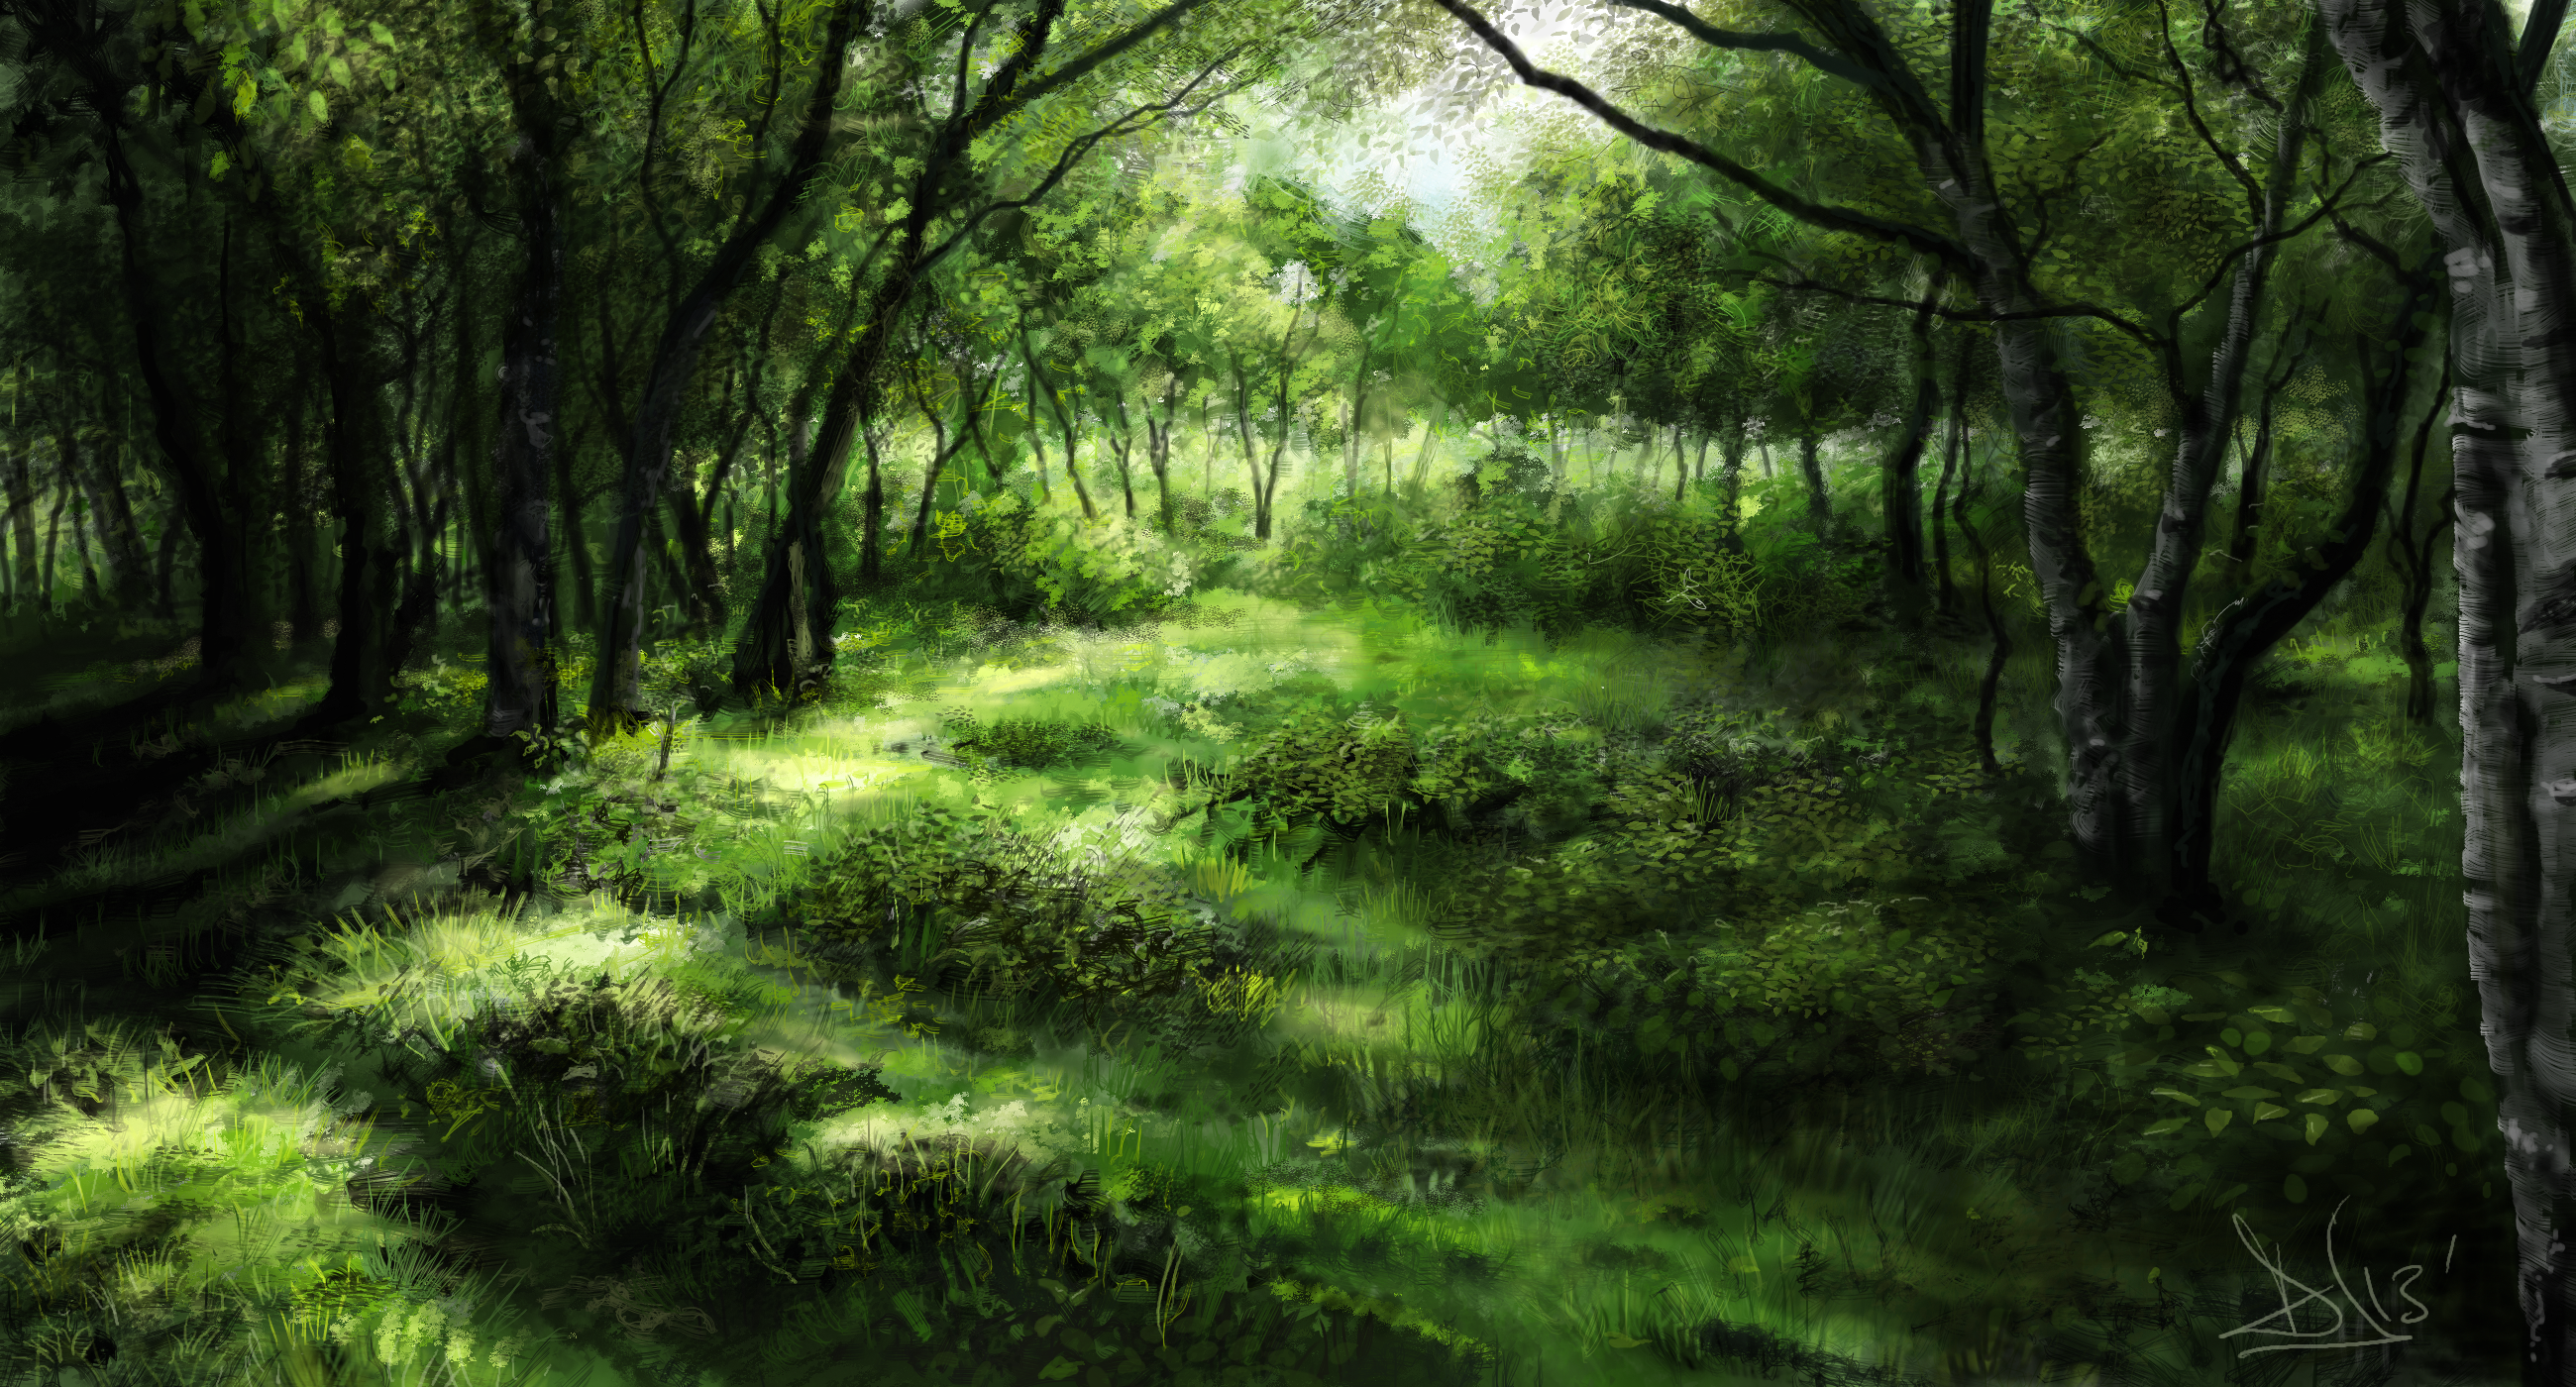 Green forest 1 of 3 by Sketchbookuniverse on DeviantArt